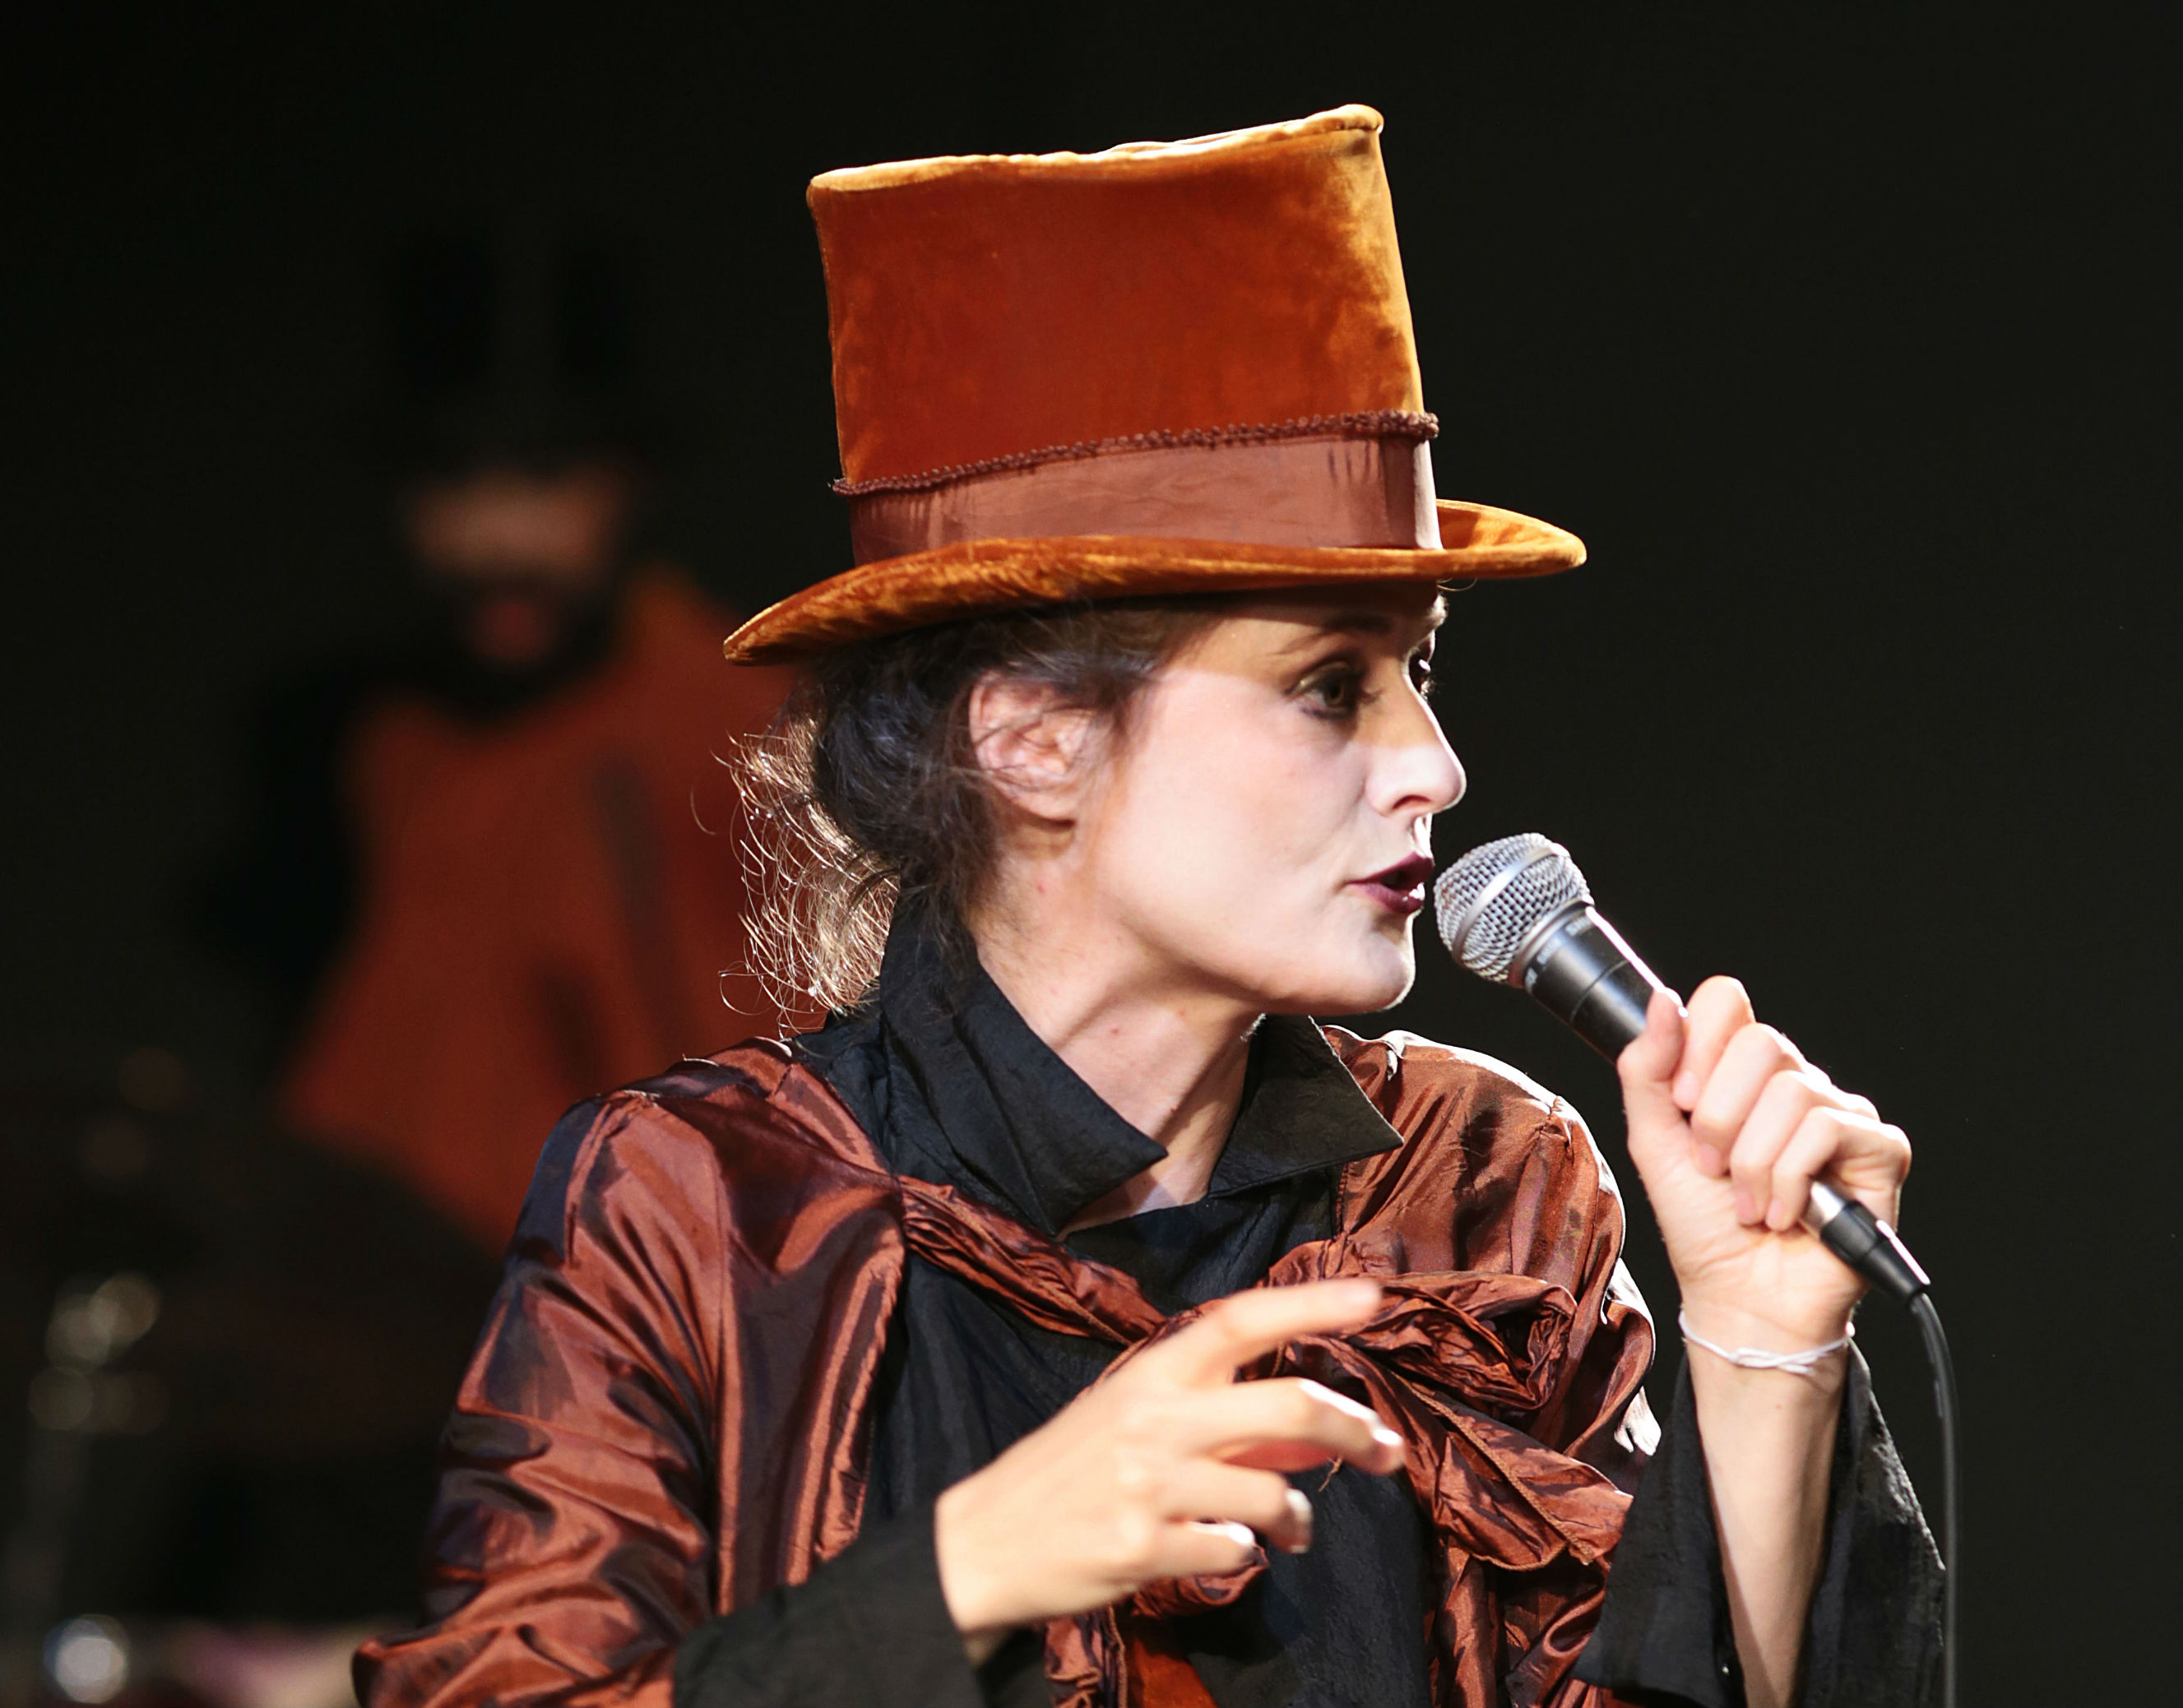 'Discours à la Nation' at Avignon Festival 2017. Photo: DR